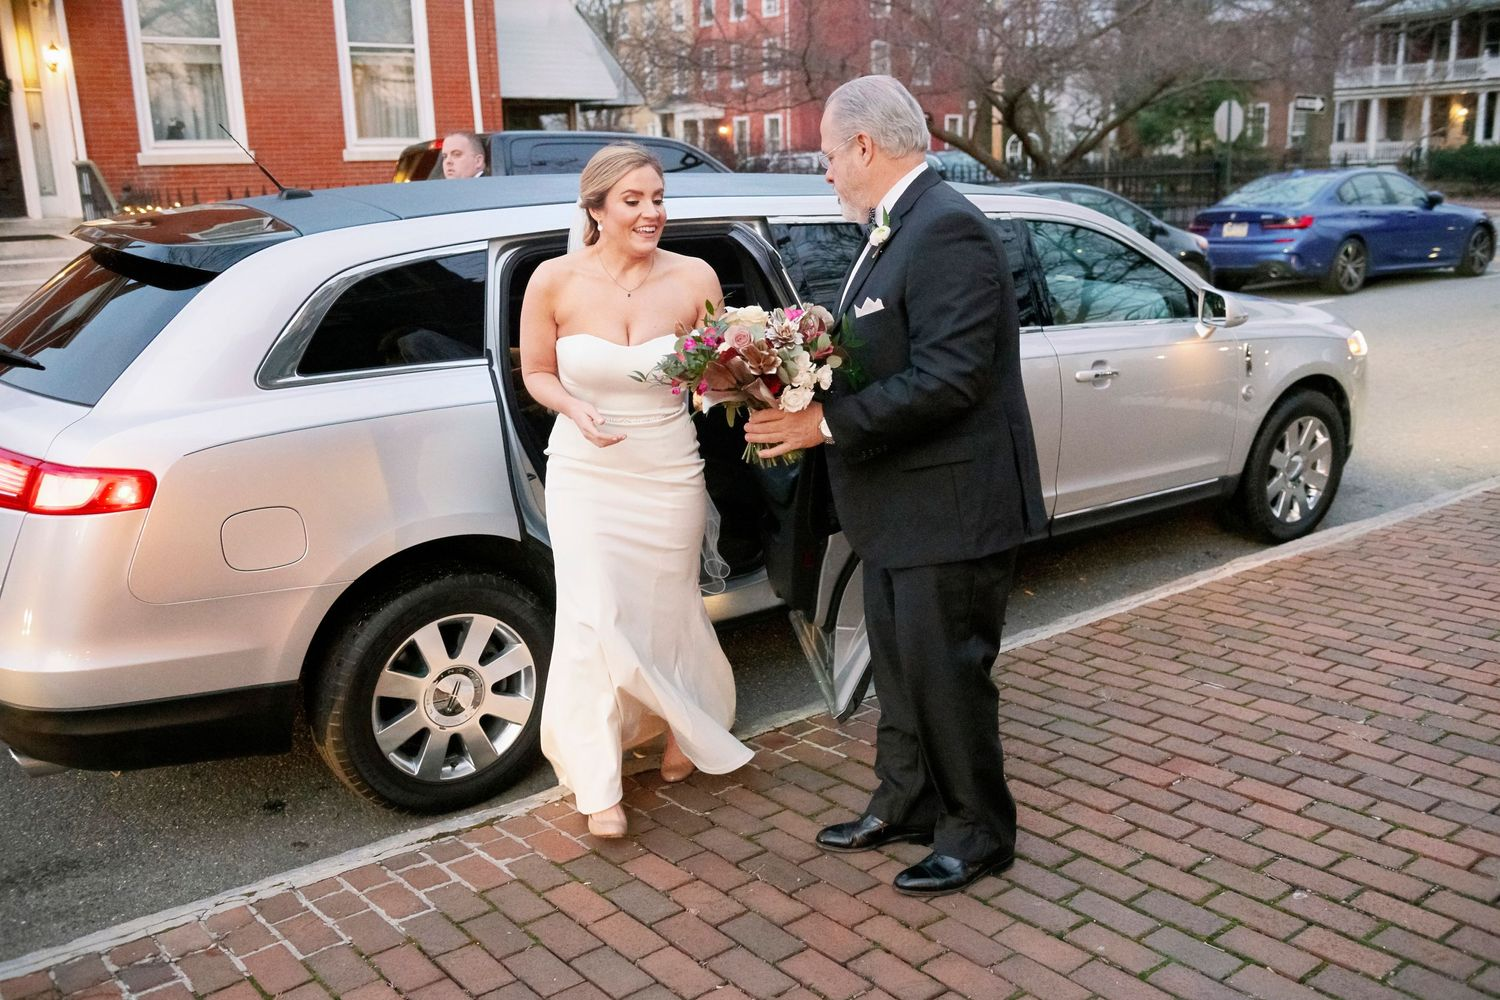 Bride exiting limo with dad's help